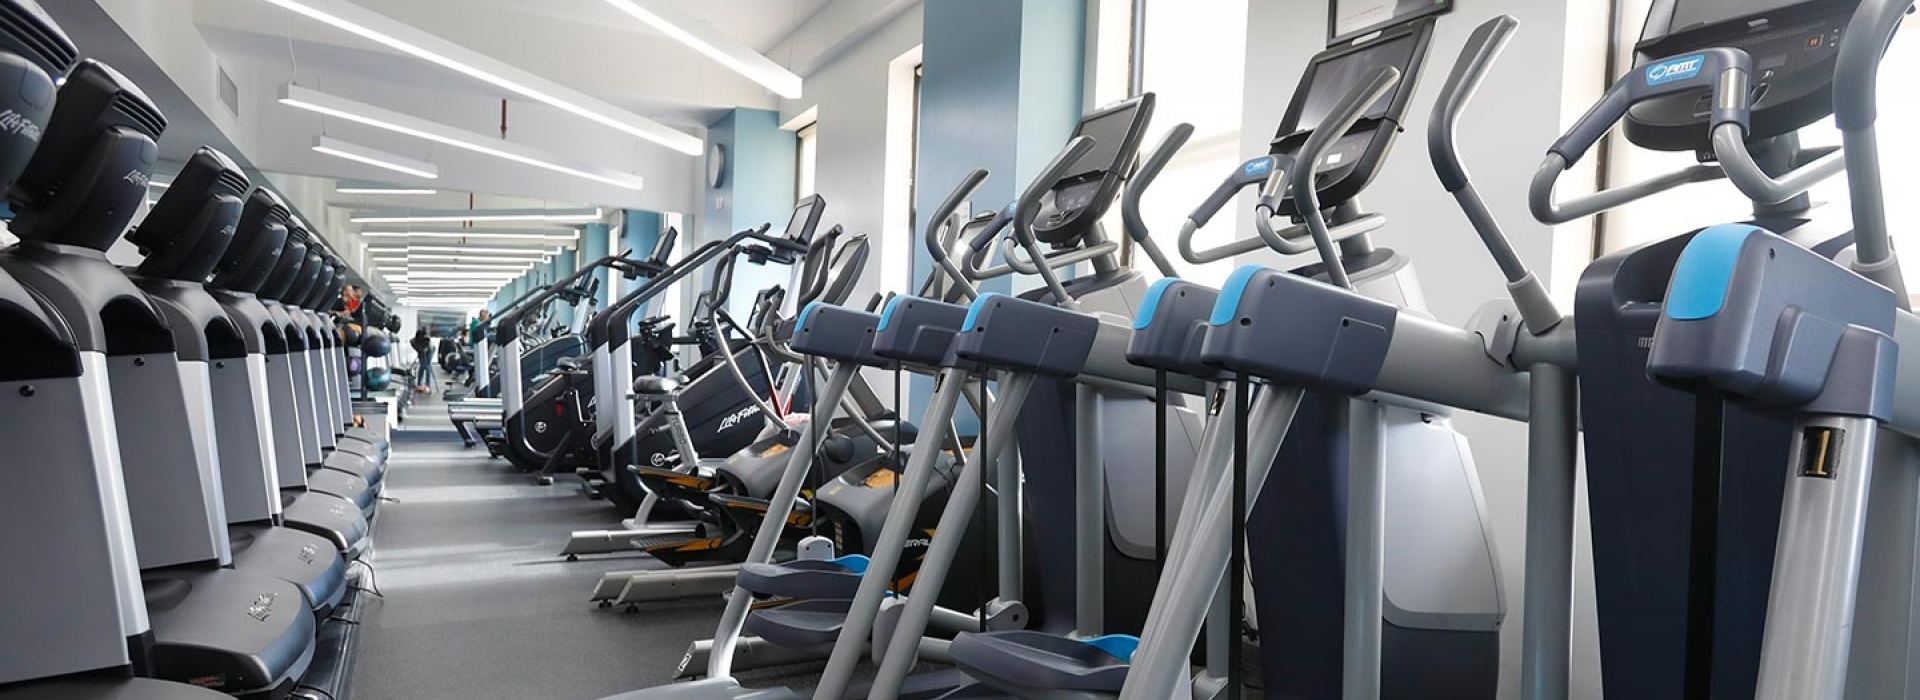 Prospect Park YMCA, gym, 2 pools, child watch and more   New York